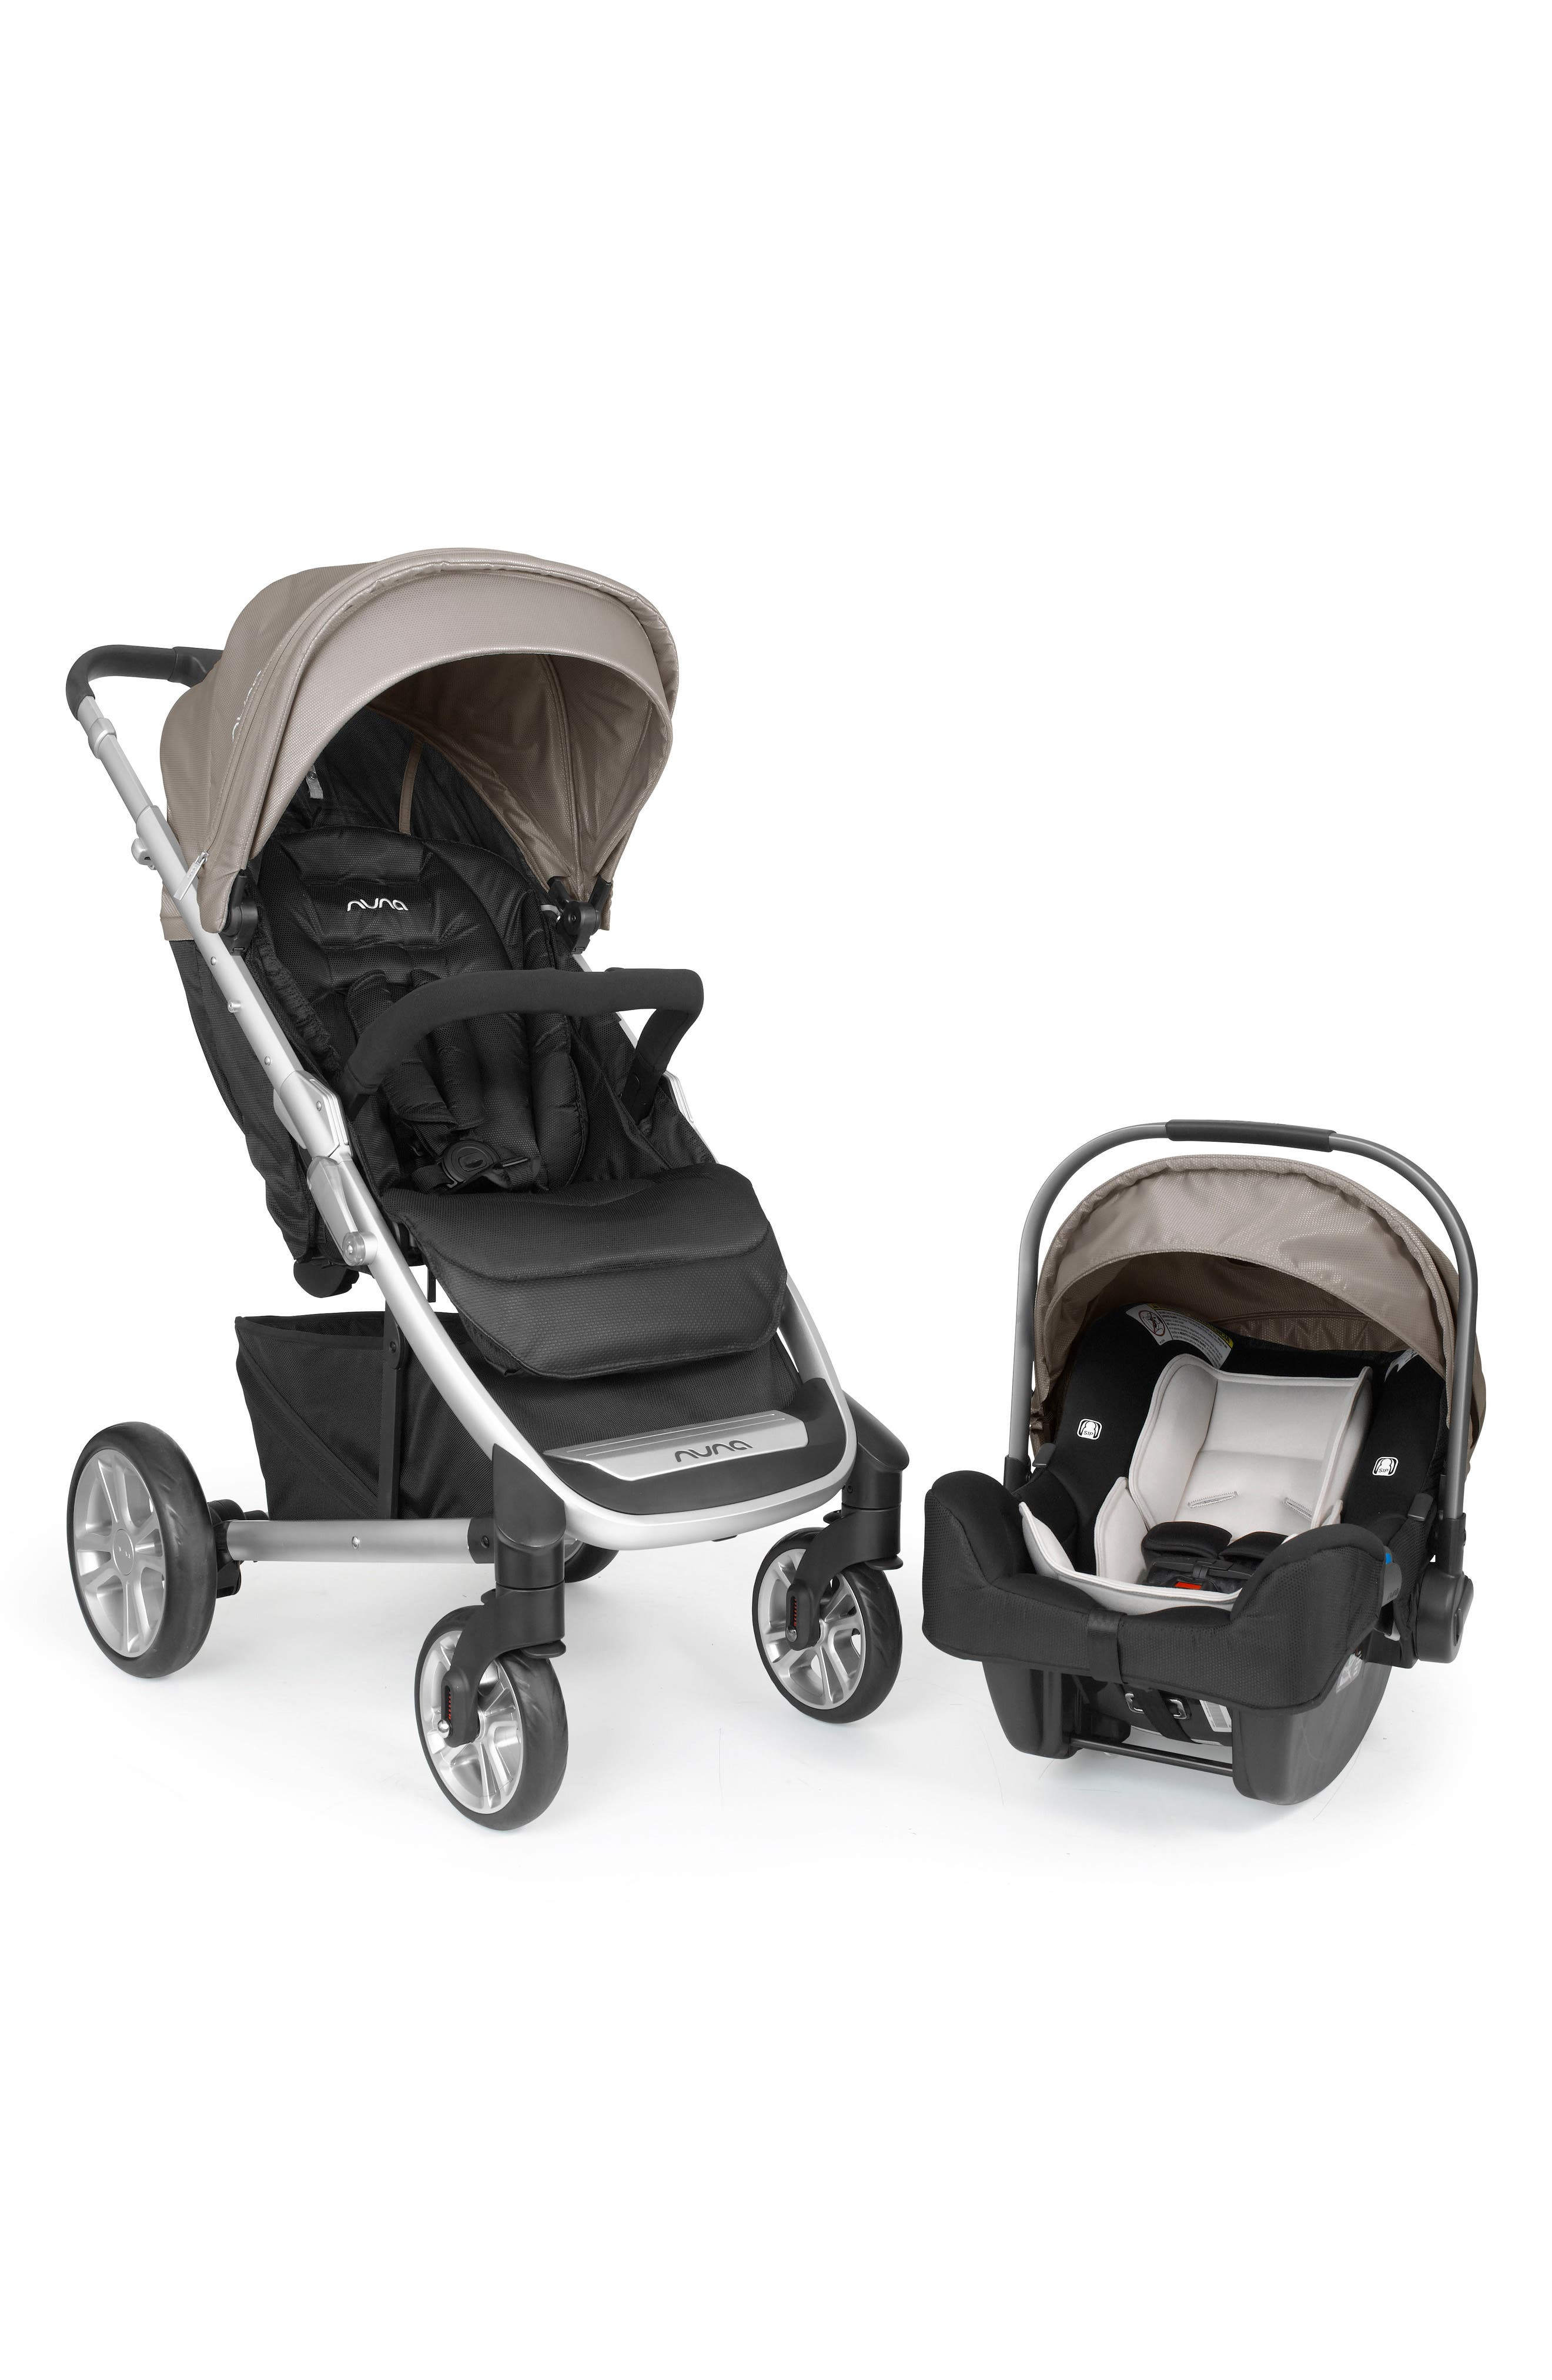 nuna travel system stroller car seat